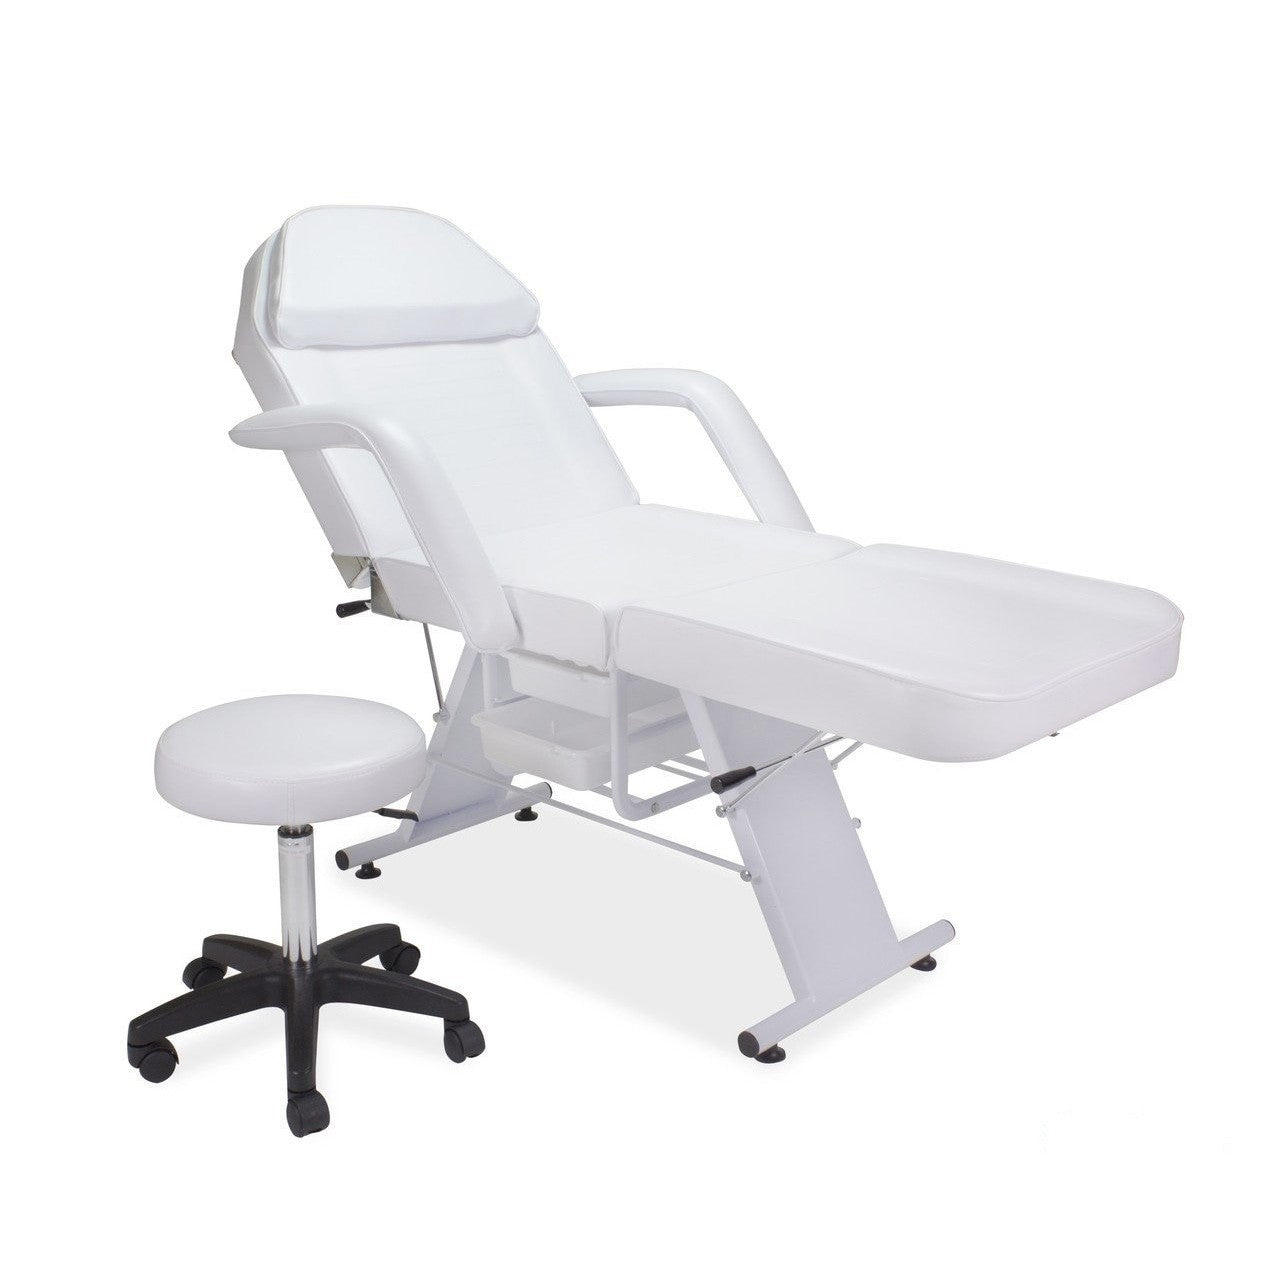 Dermalogic Dermalogic Parker Facial Bed & Stool Facial Chairs - ChairsThatGive